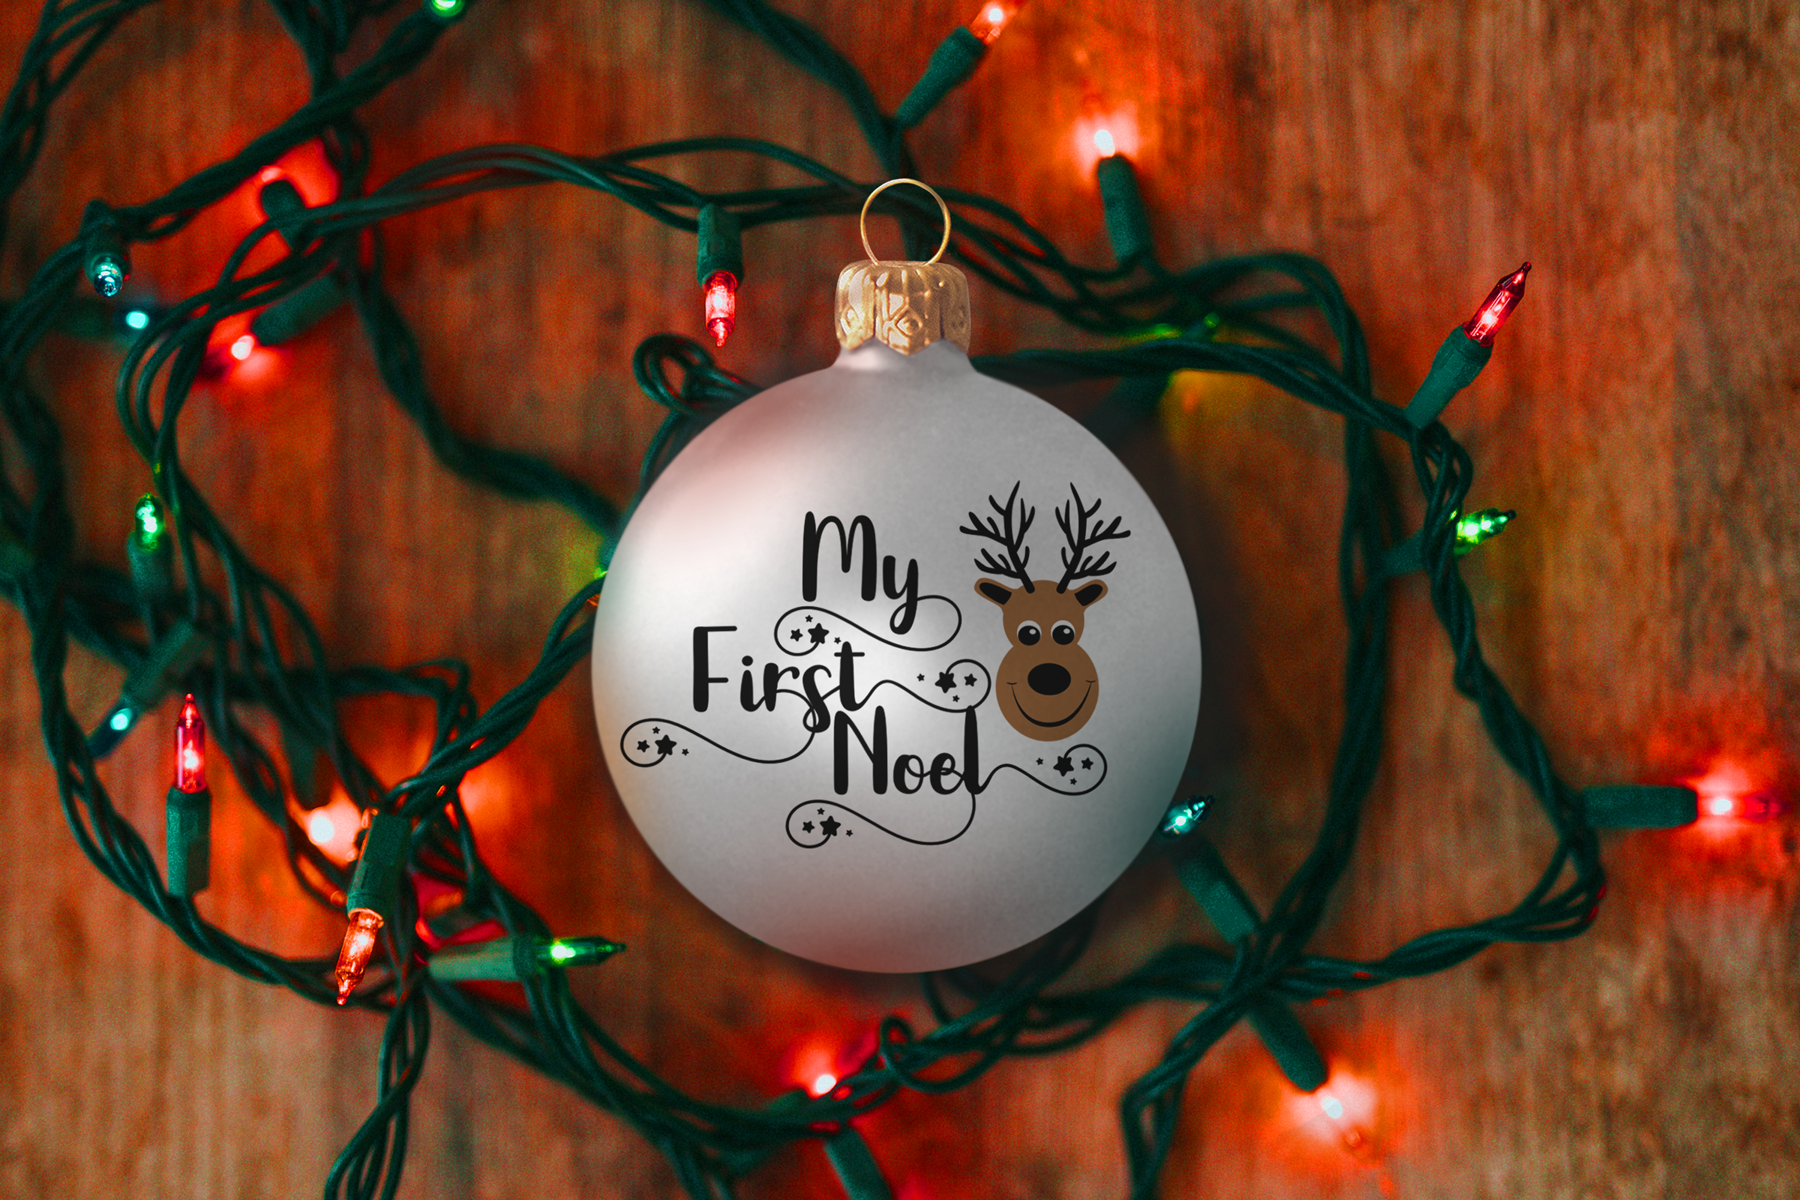 Christmas Ball Ornament Mockup, Bauble Mock-Up, PSD example image 3